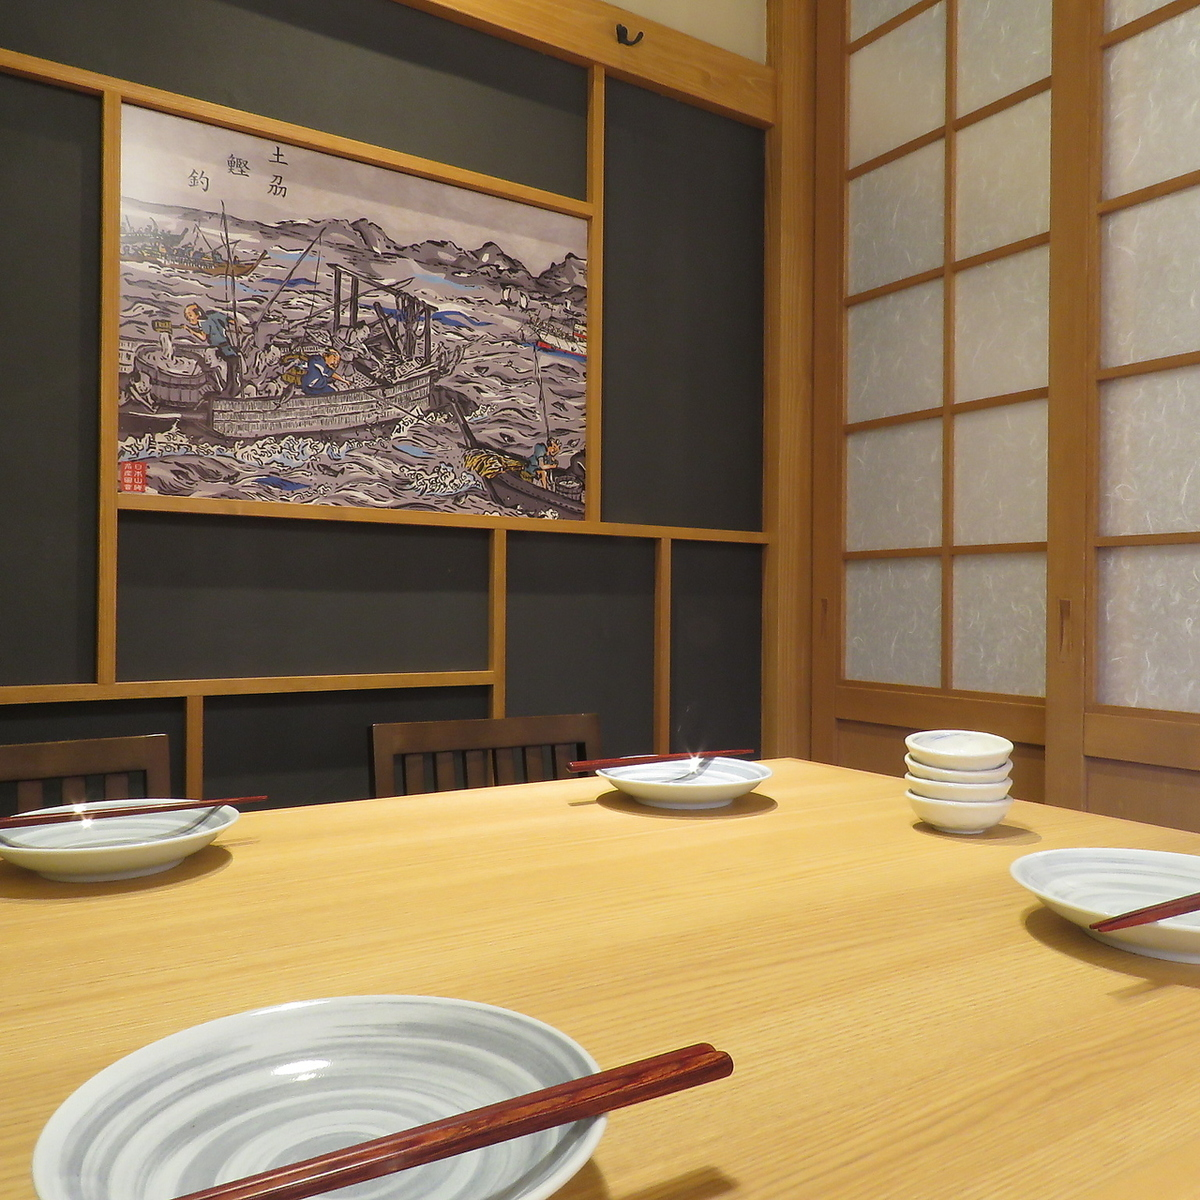 It is a popular seat in a semi-private room where you can taste the Japanese atmosphere through the goodwill!